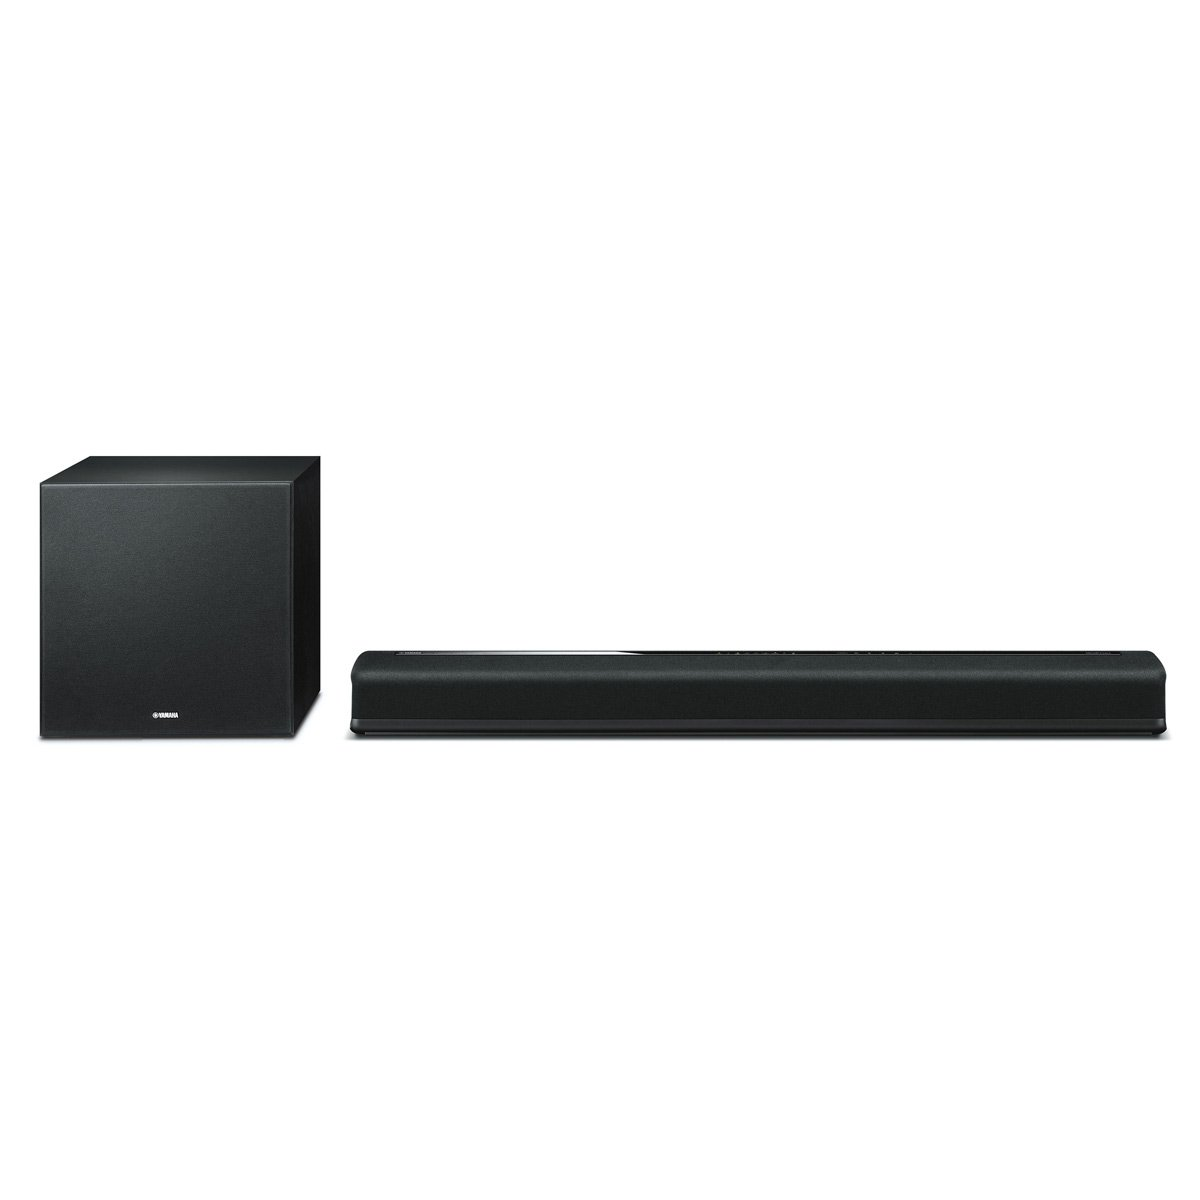 Yamaha YAS-706 MusicCast Wireless Multiroom Sound Bar, Works with Alexa